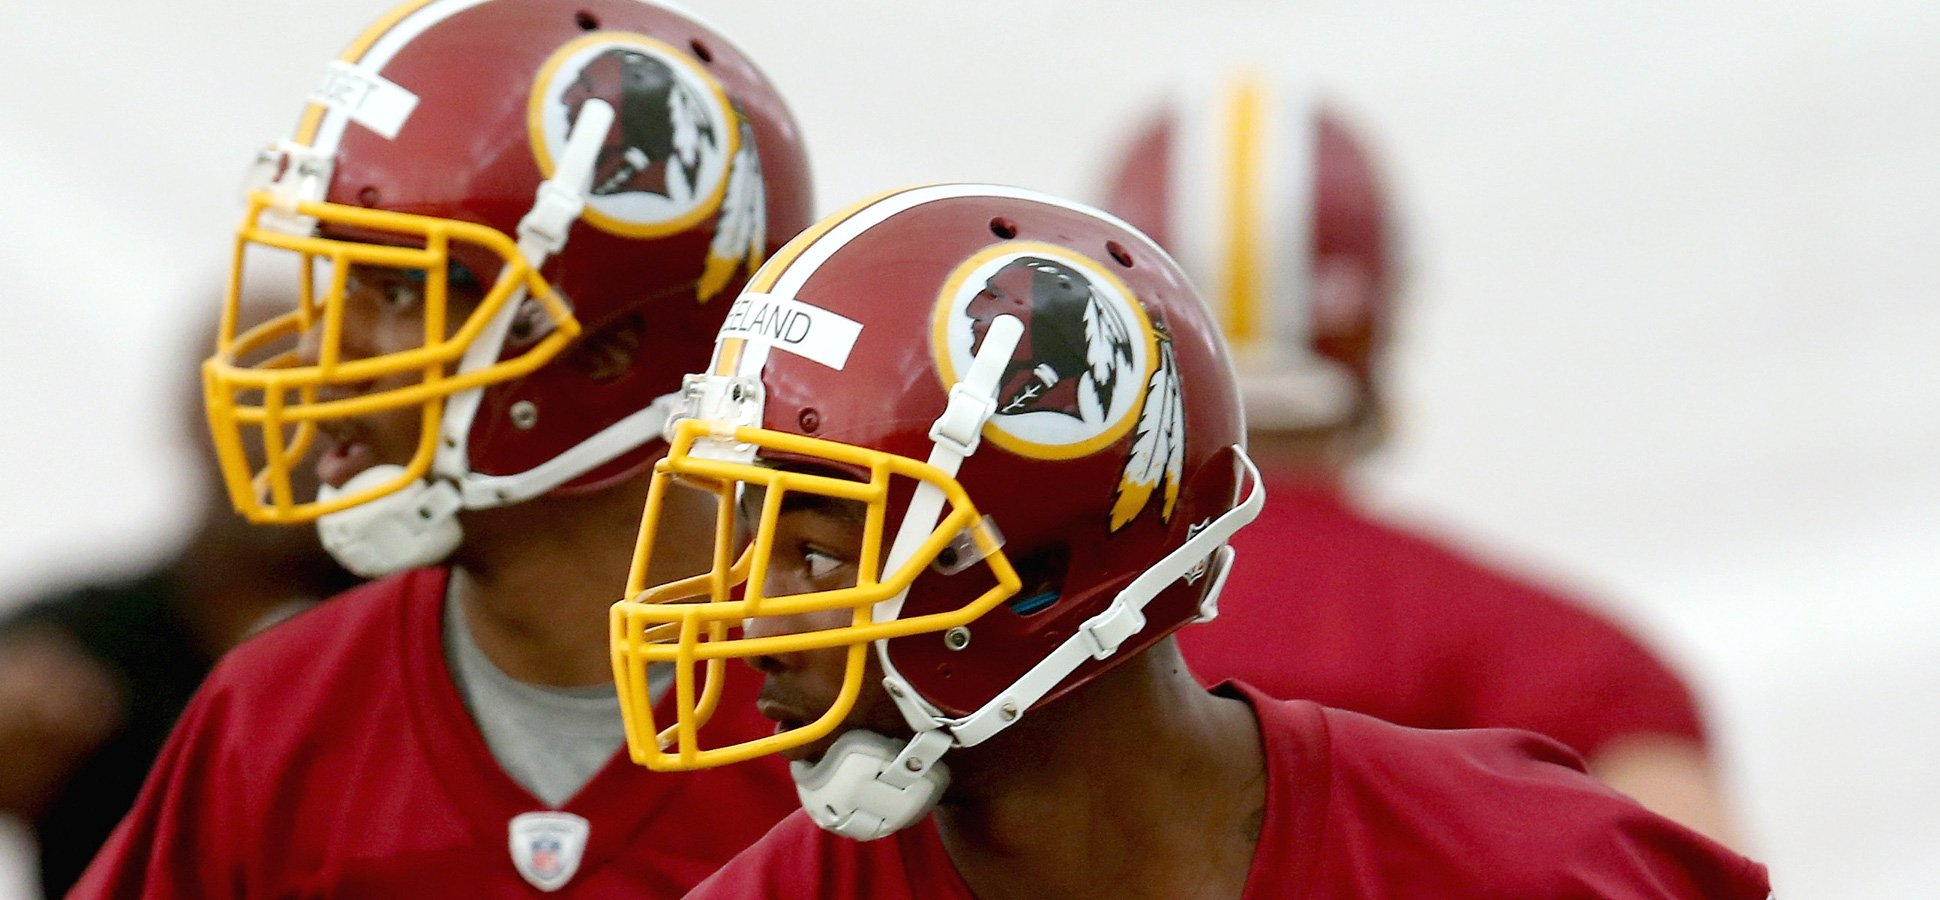 Redskins  Trademark Debacle  A Cautionary Tale for Business  9cb081610